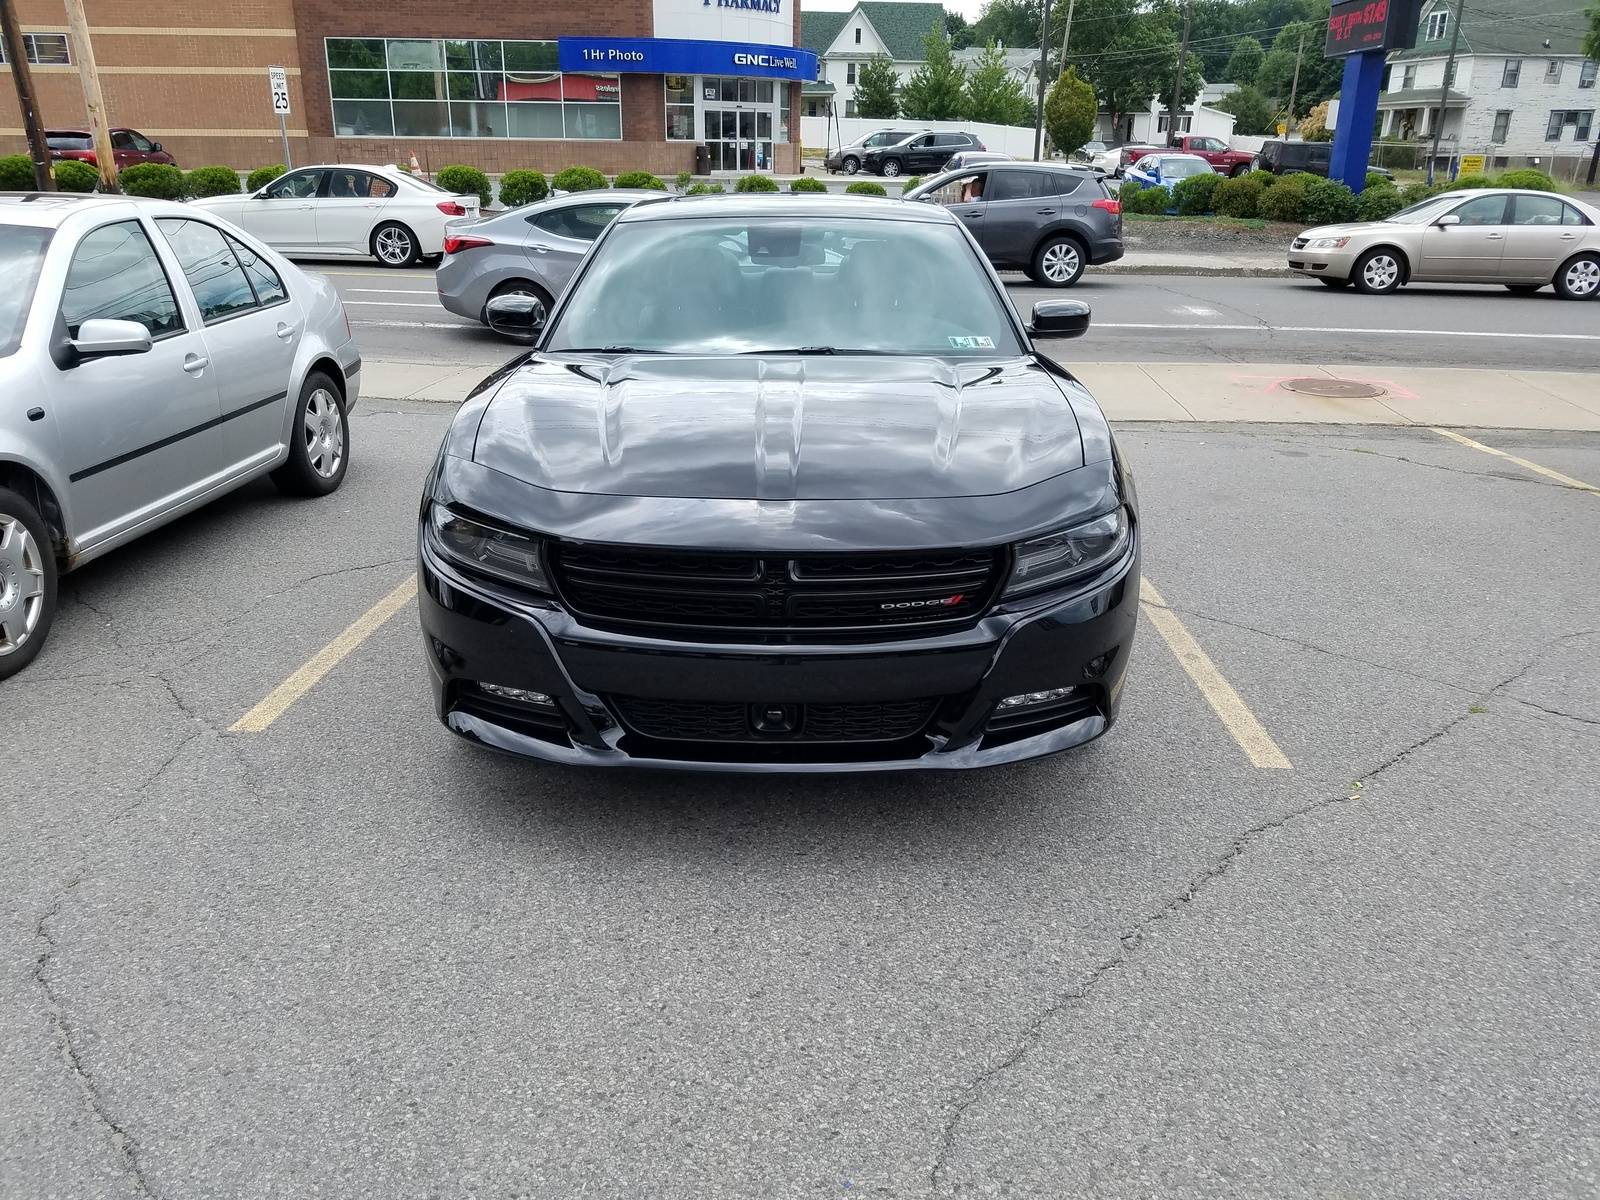 Picture of 2016 Dodge Charger R/T